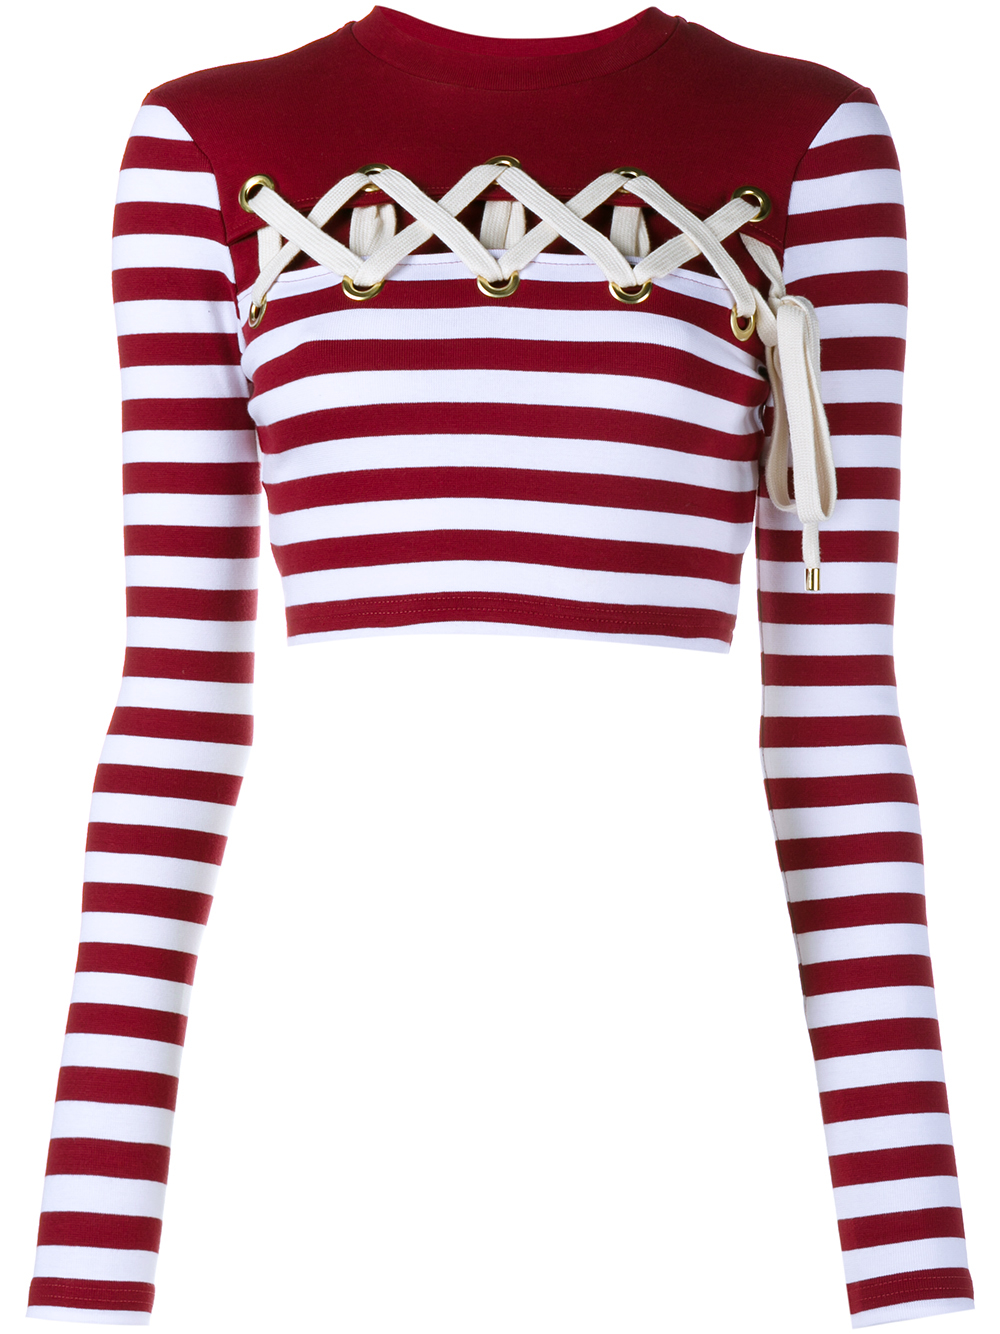 Find Stripe fabric at loadingbassqz.cf! Free shipping on domestic orders $49+ and free returns. Kaufman Classic Seersucker Stripe Red/White. $ Only 46 left in stock - order From Robert Kaufman Fabrics, this staple knit fabric is perfect for creating lightweight knit dresses, skirts, tops, children and baby apparel and more. It features a.